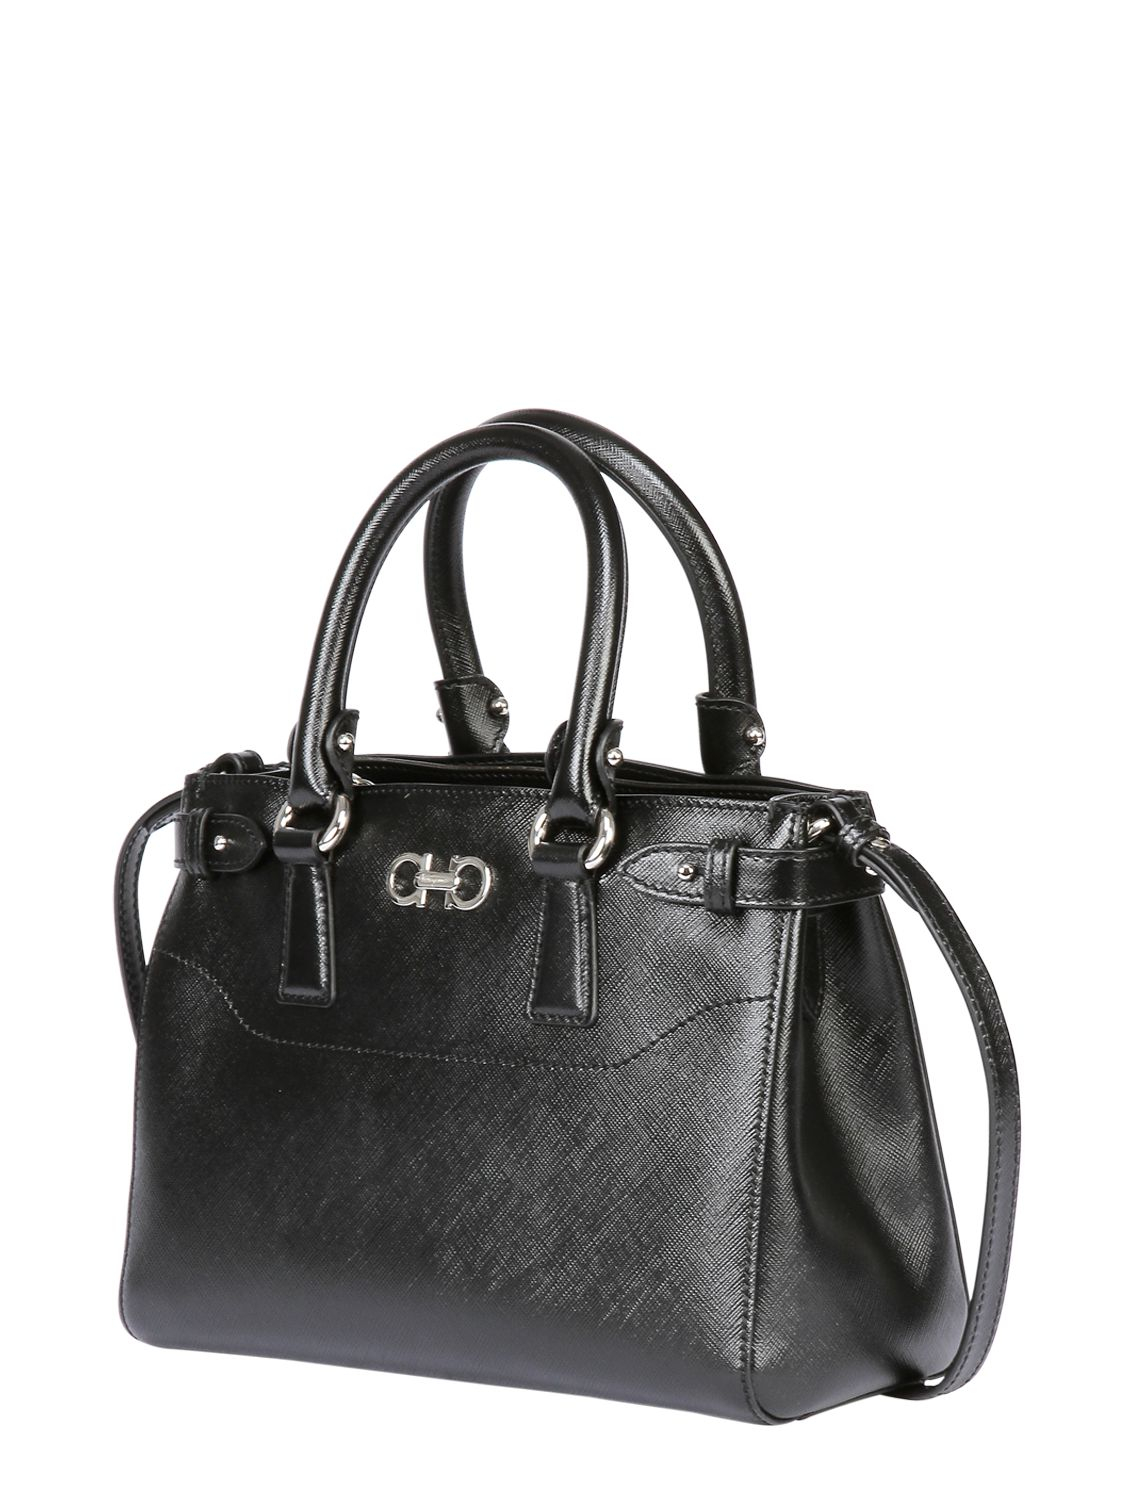 Lyst - Ferragamo Small Batik Saffiano Leather Top Handle in Black 0661304eb16ef